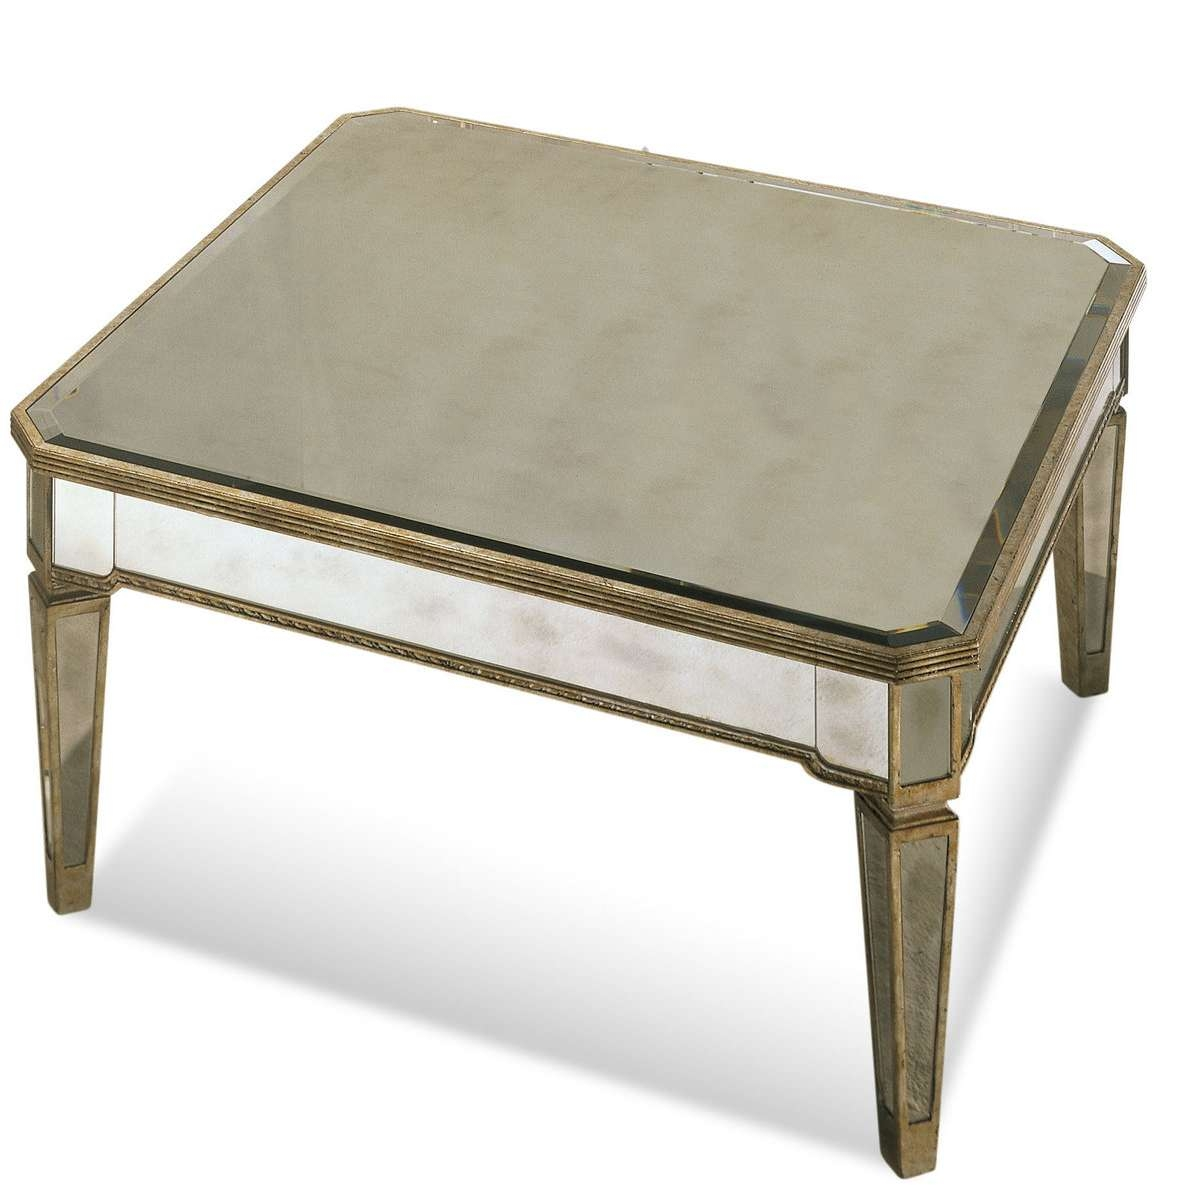 Fashionable Antique Mirrored Coffee Tables Regarding Borghese Mirrored Square Cocktail Table (antique Mirror & Silver (View 7 of 20)